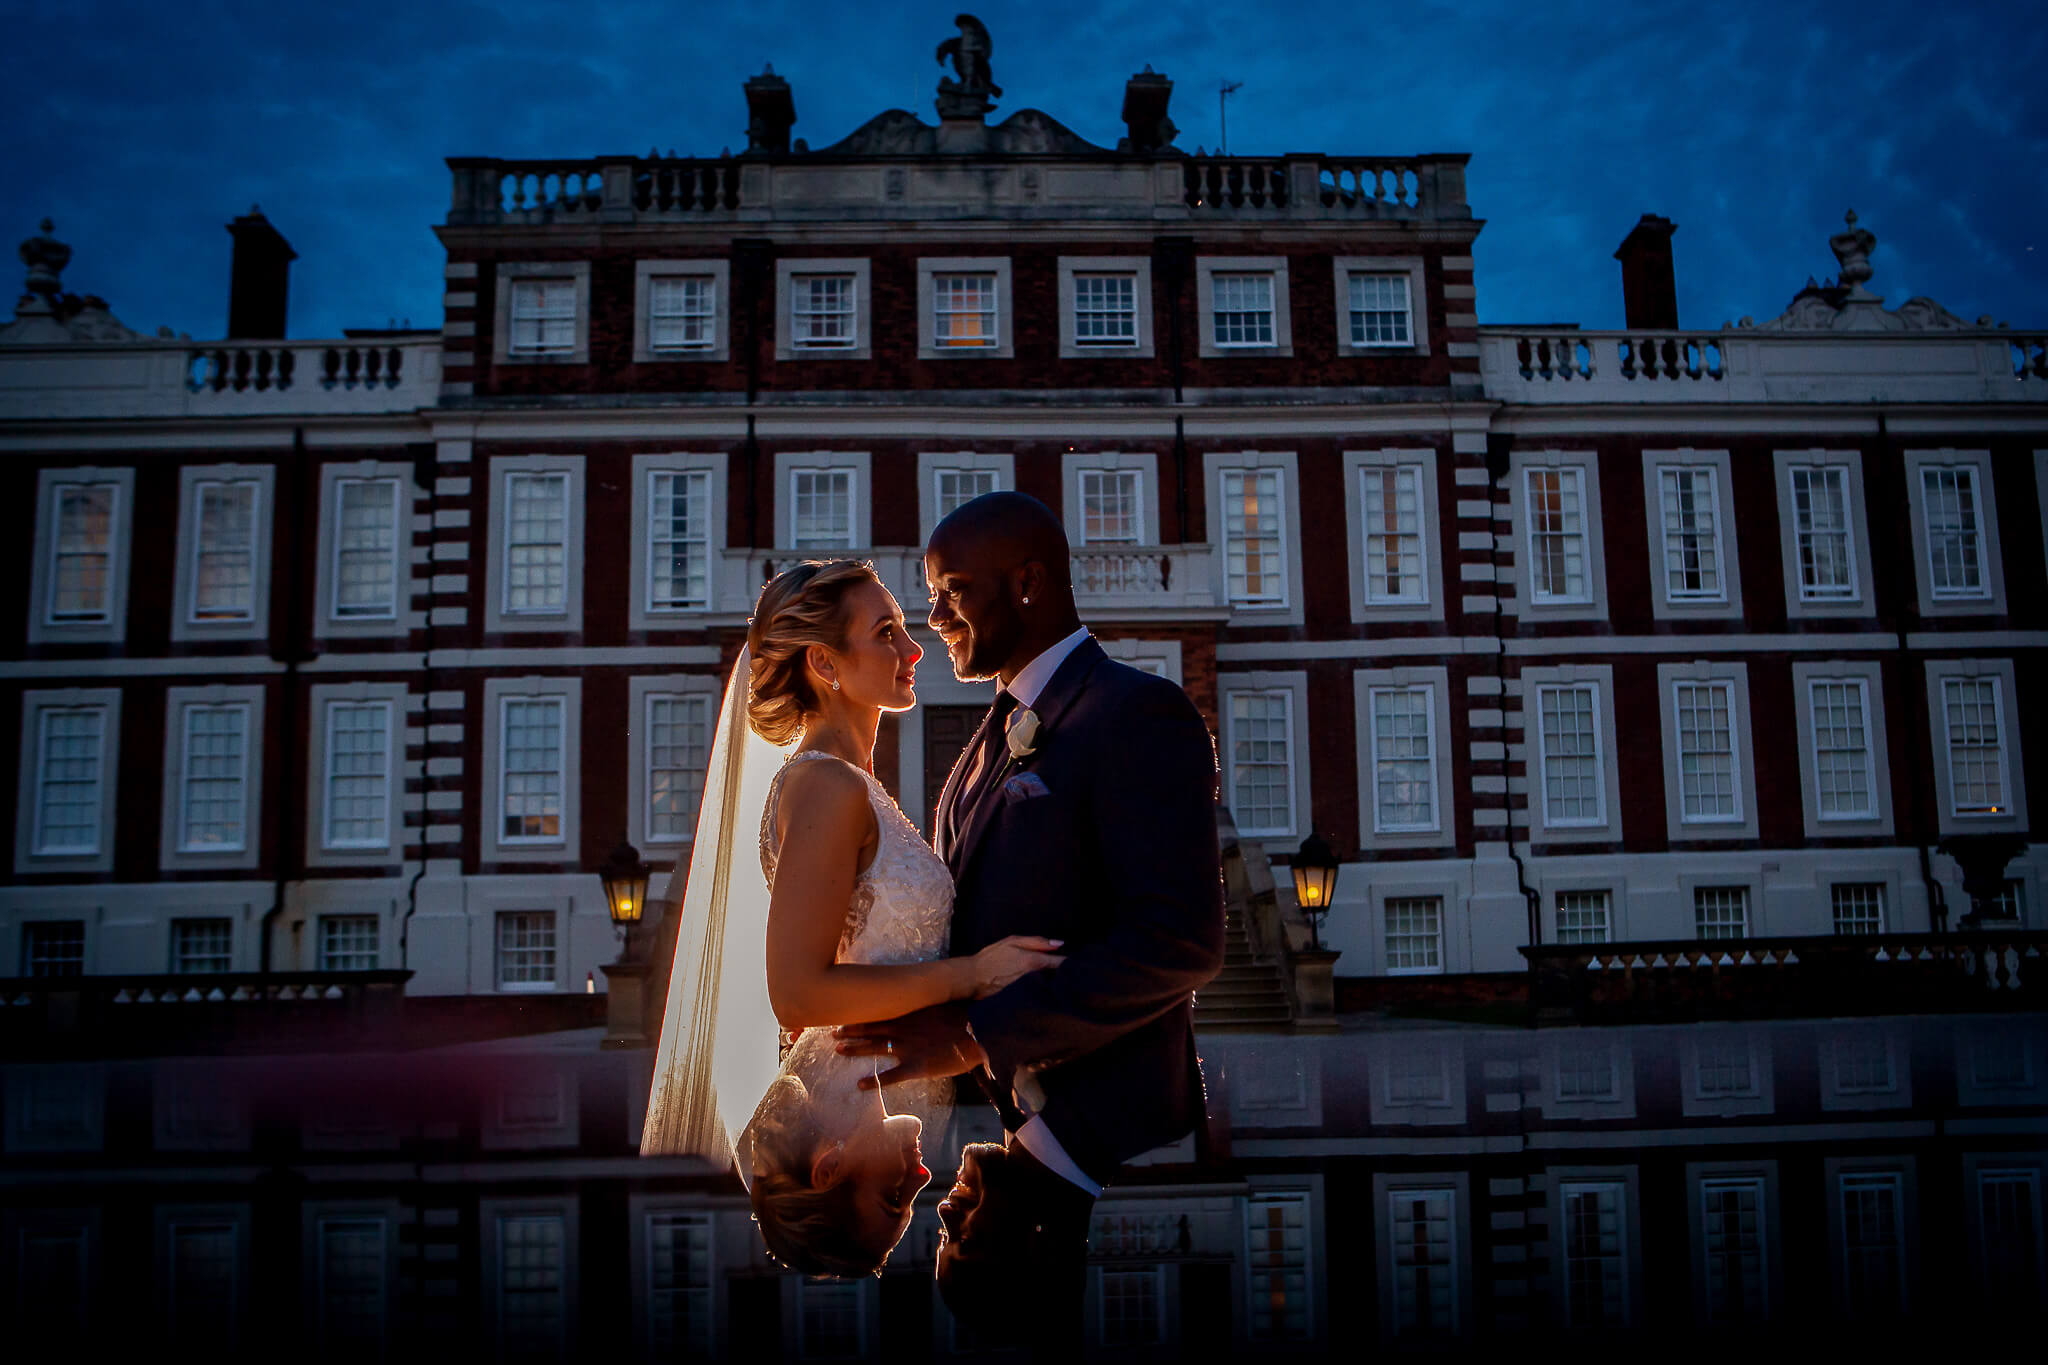 best-wedding-photographers-uk-europe-stanbury-photography-188